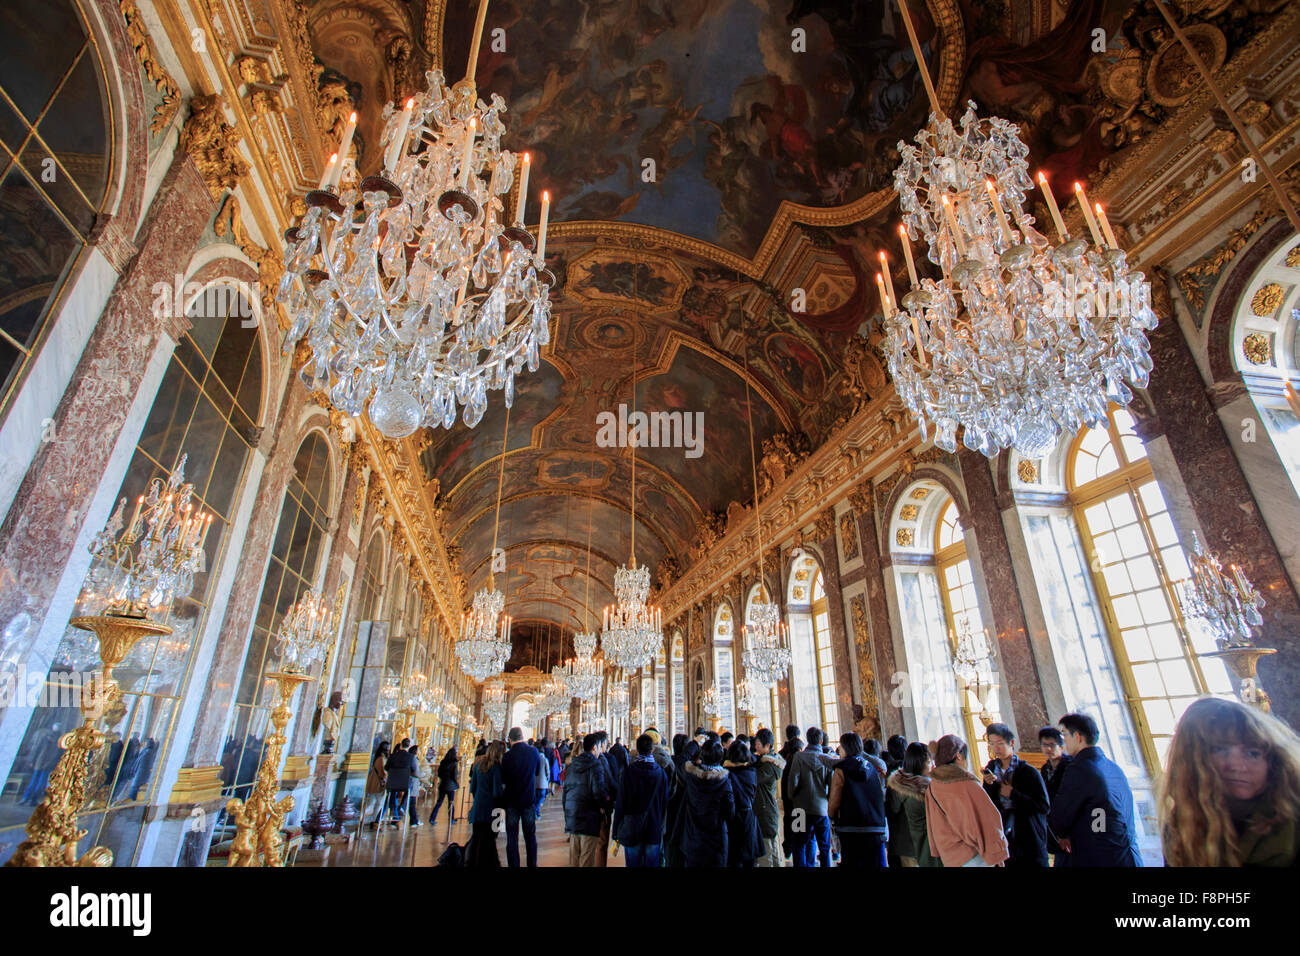 Opulent chandeliers line the roof of the hall of mirrors in the opulent chandeliers line the roof of the hall of mirrors in the palace of versailles paris france aloadofball Gallery